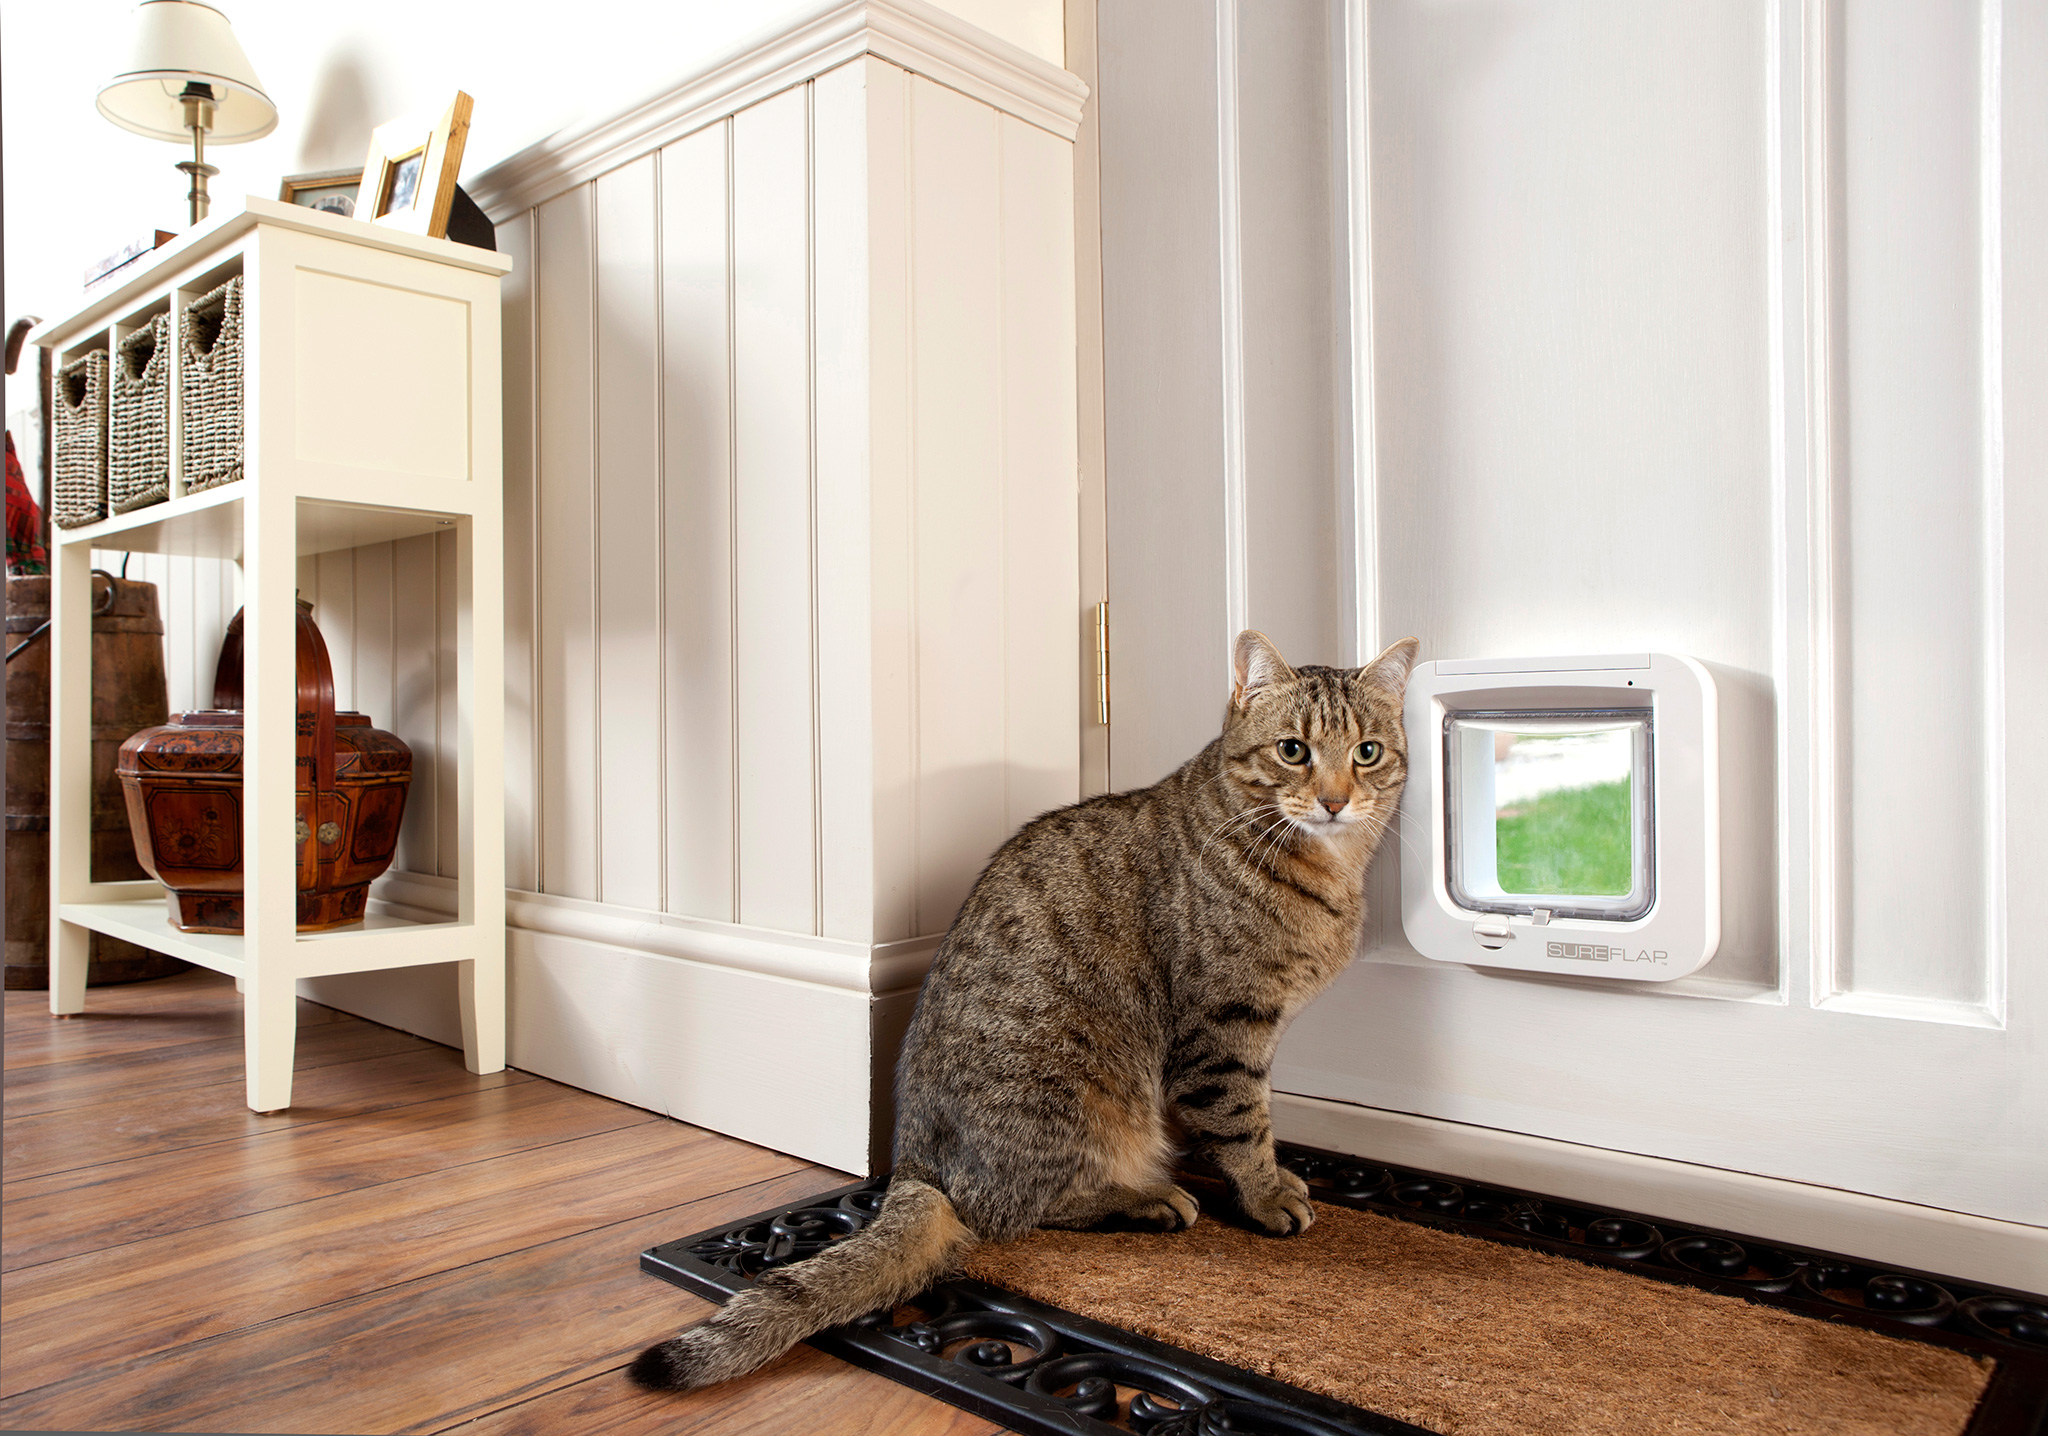 & Support | Microchip Cat Door Help | SureFlap